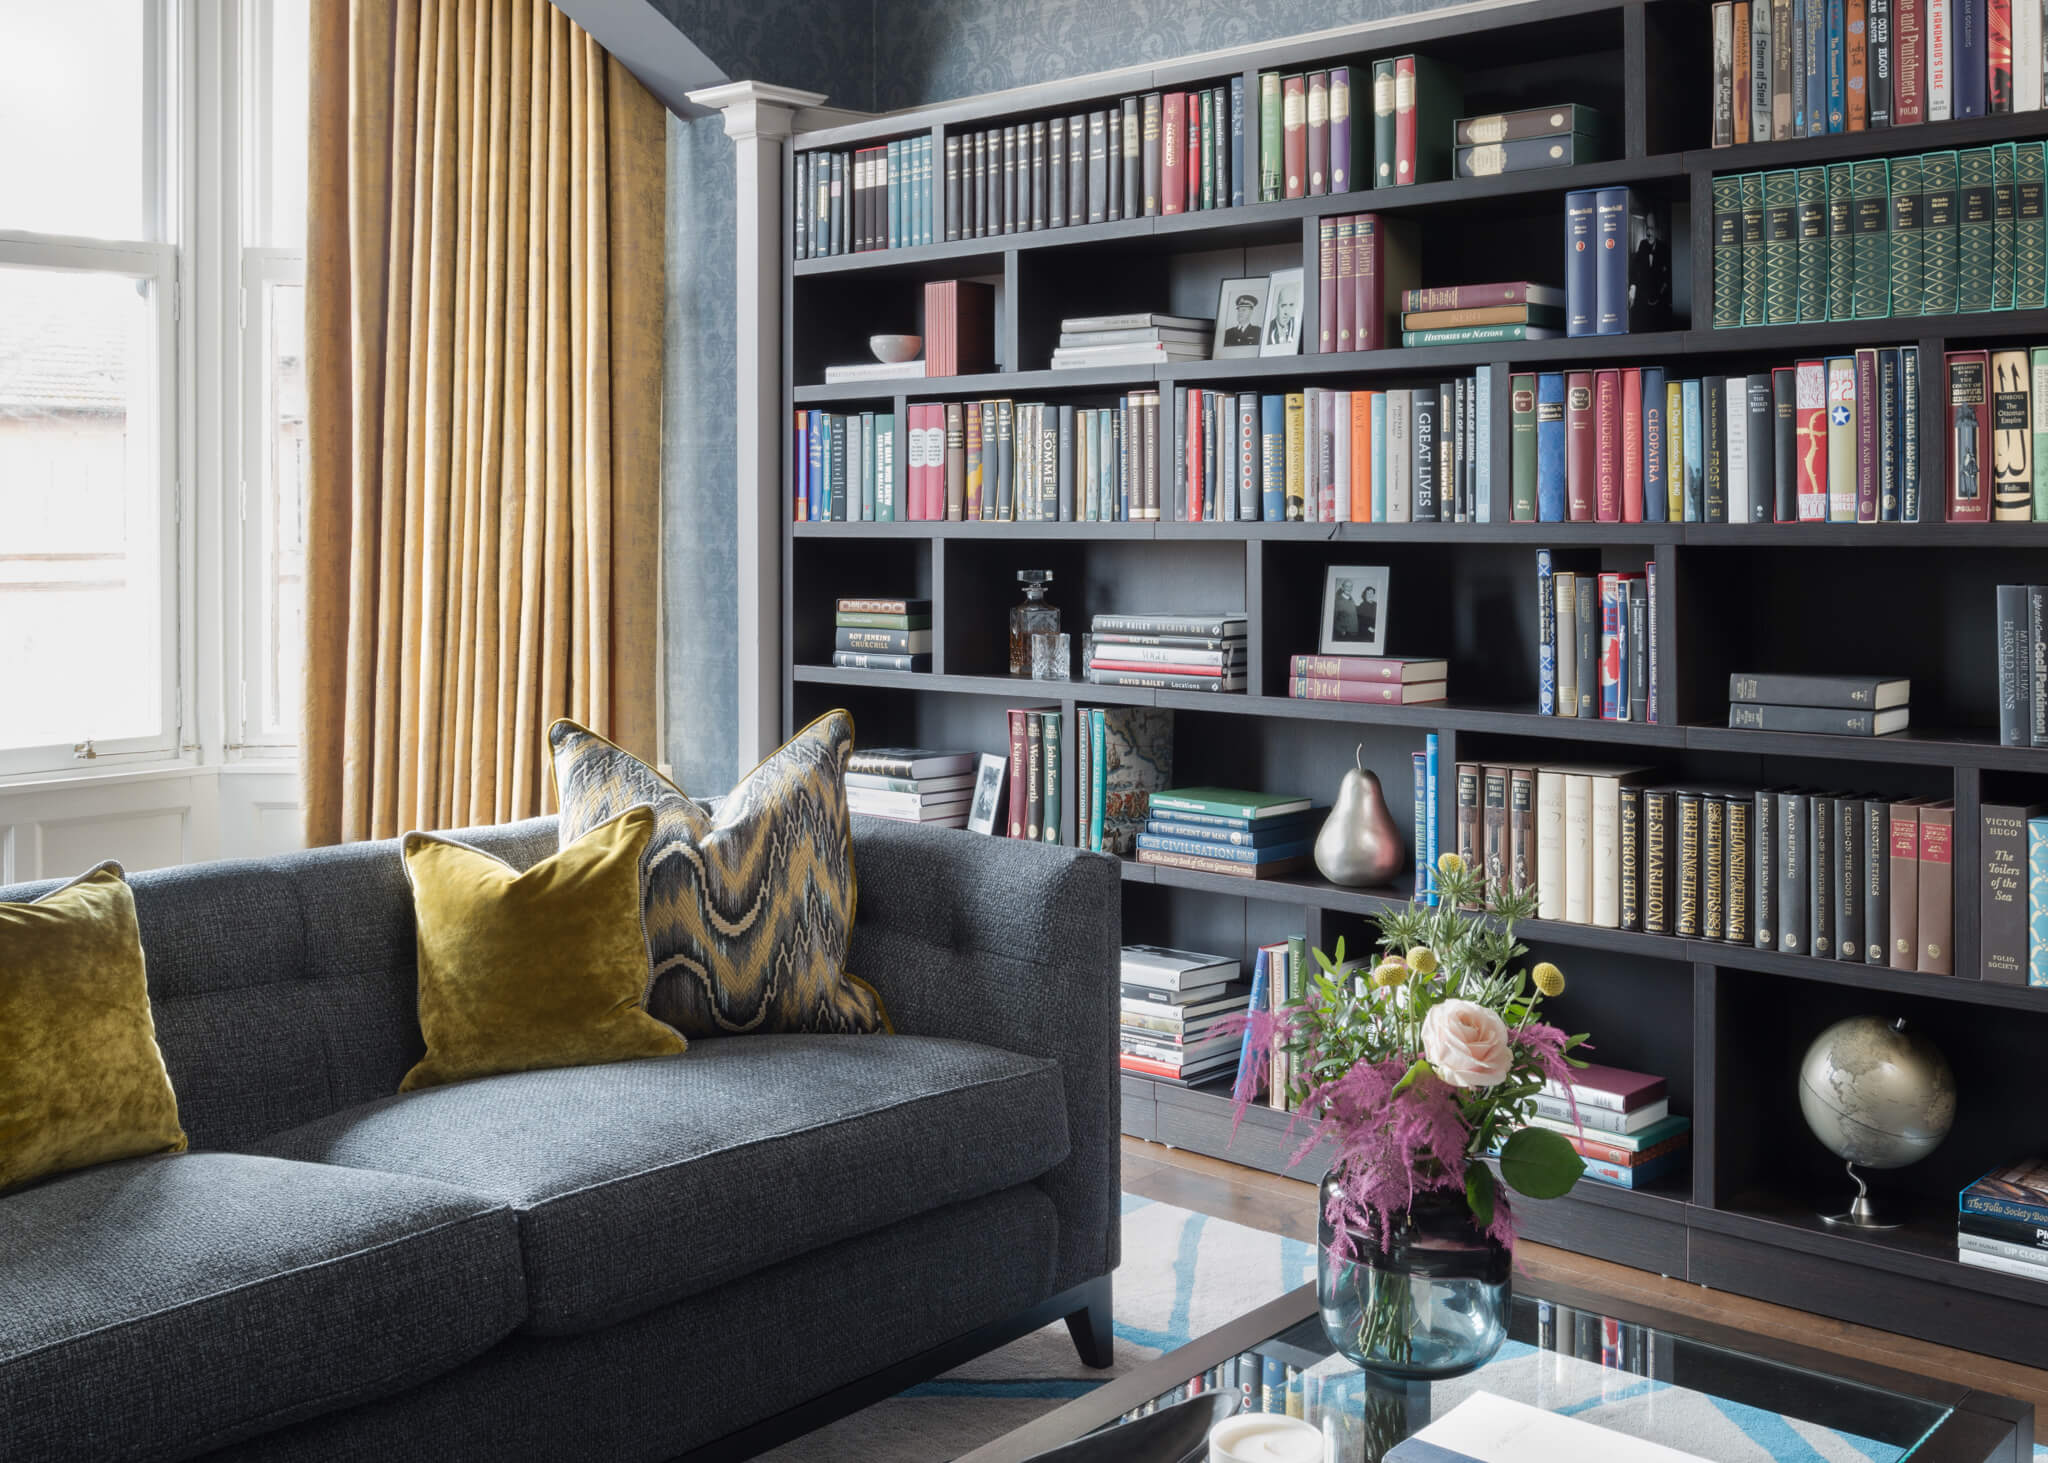 Print-Drawingroom-Across-Coffee-Table-To-Bookcase-Chelsea-Mclaine-Interiors-Introductory-Shoot-©ZACandZAC-2